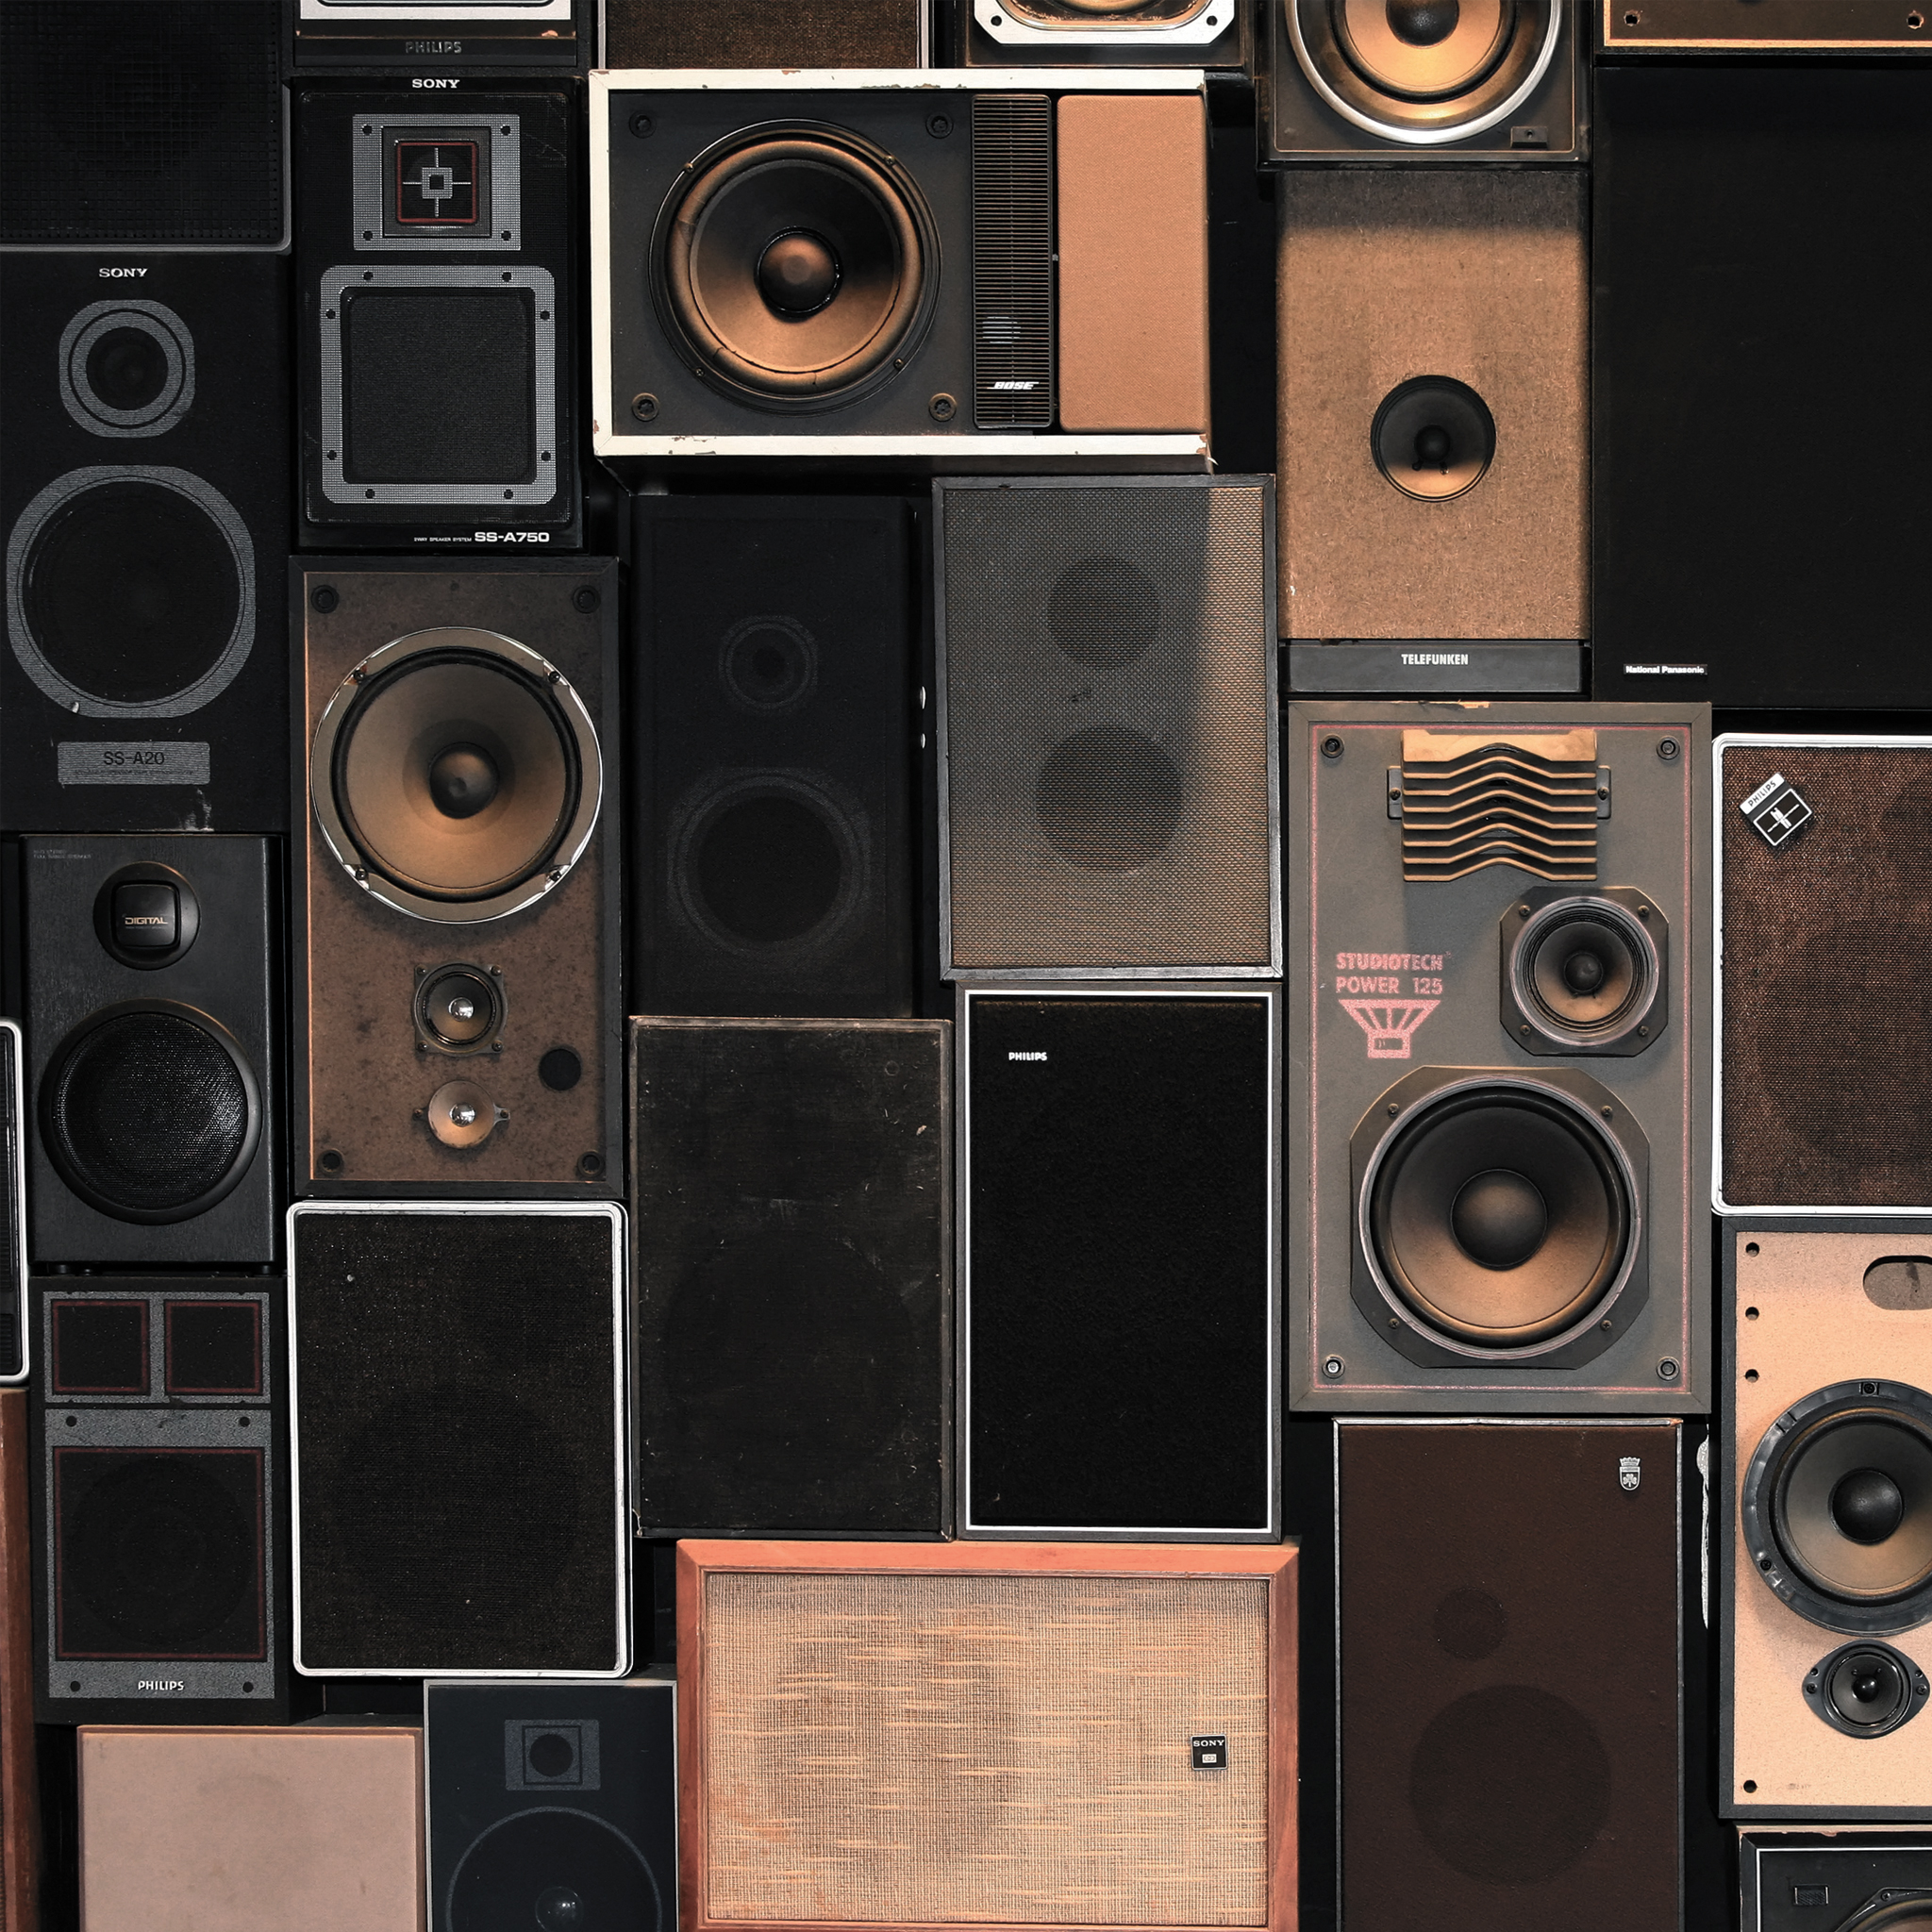 Wall-of-Sound-3Wallpapers-iPad